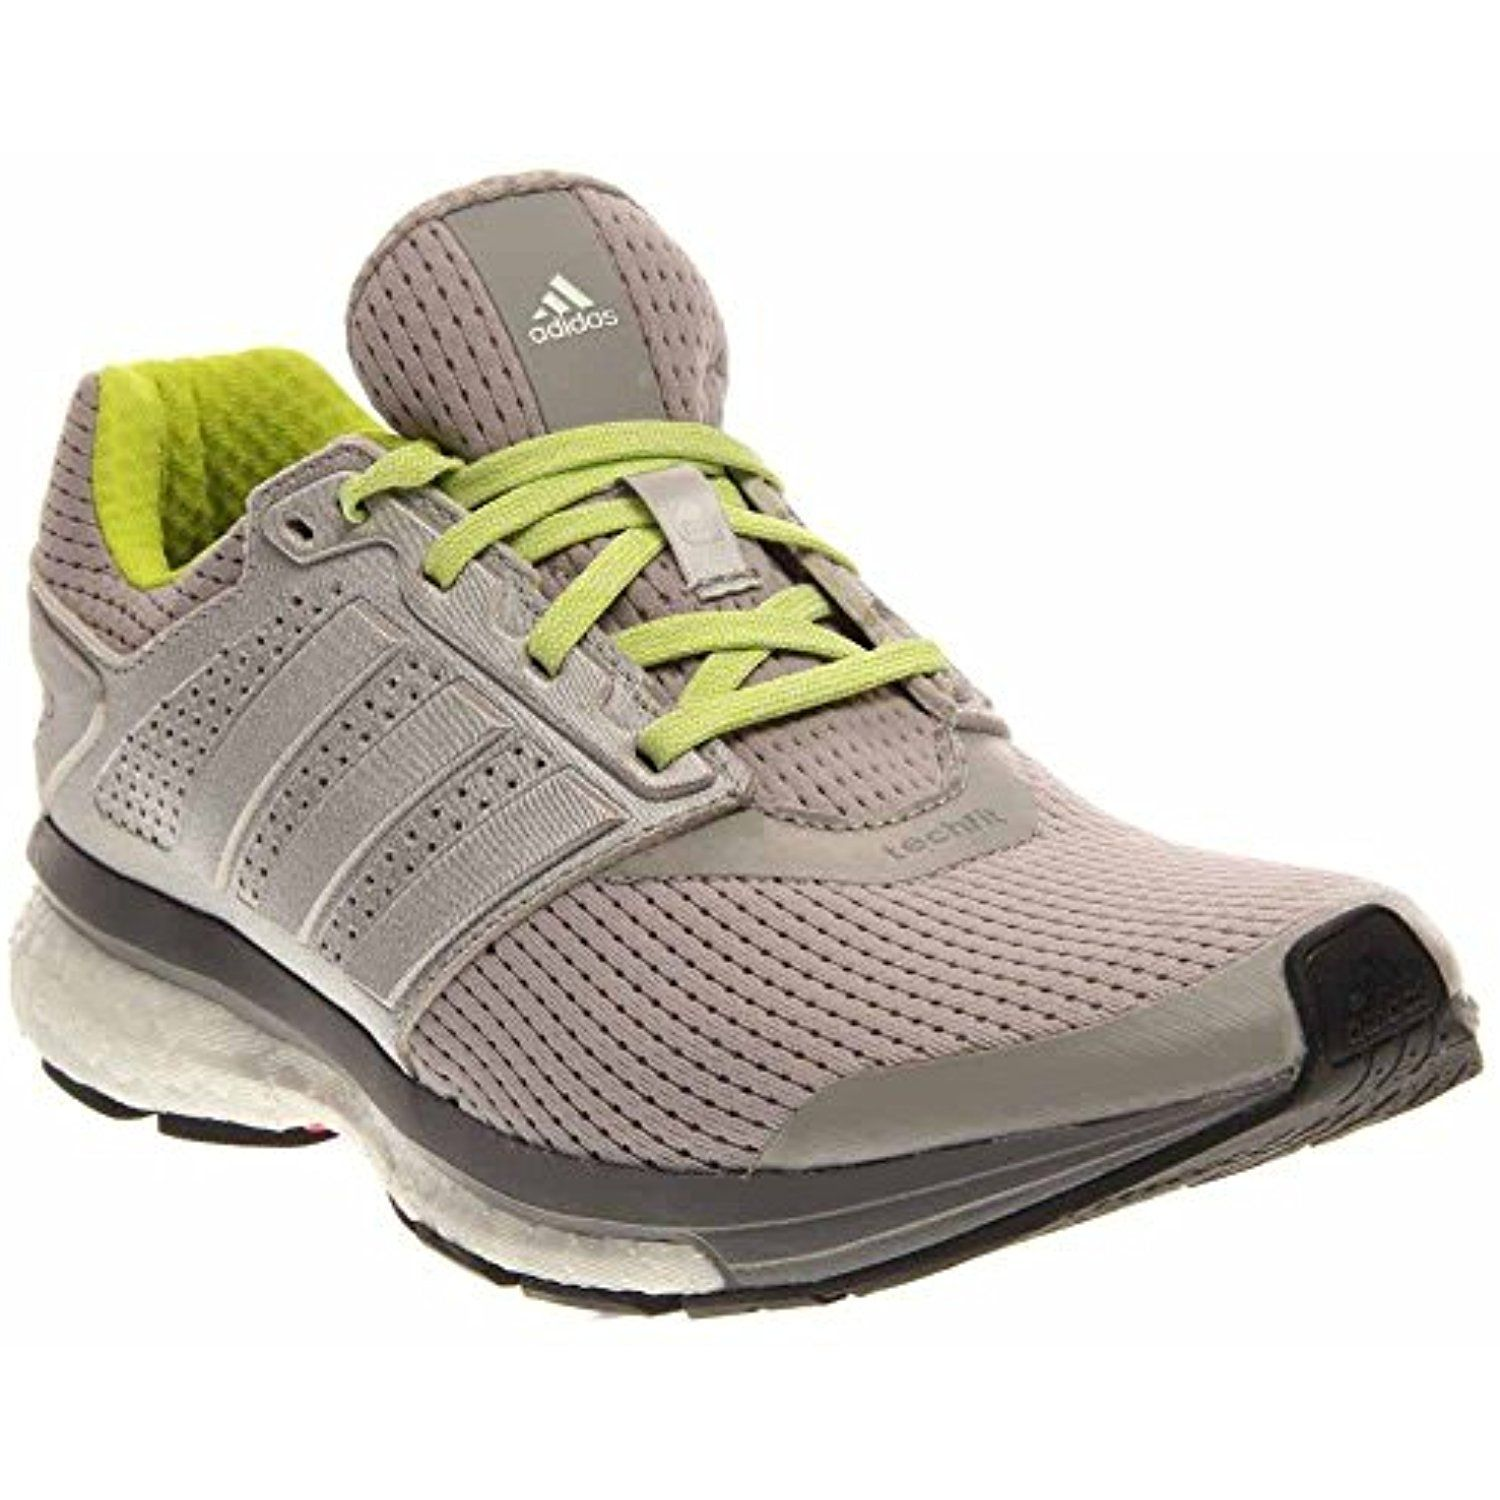 3b838cfc83b7e adidas Supernova Glide 7 Boost  This men s neutral runner comes loaded with  boost cushioning that keeps every step fully charged. A premium-fit mesh  upper ...